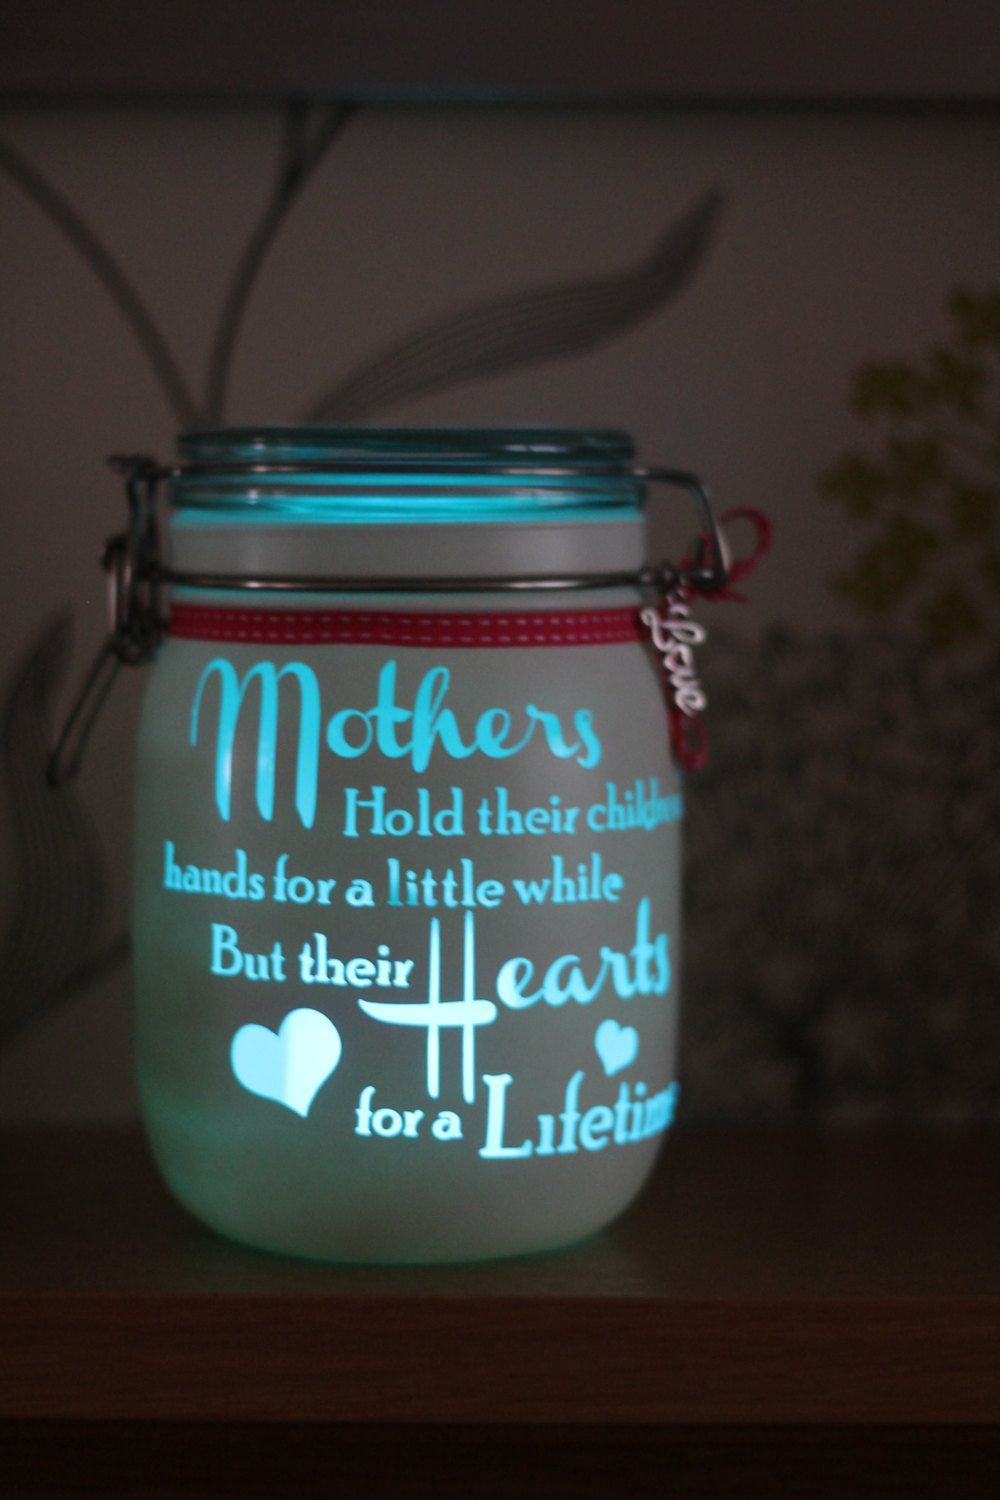 Quotes Jar Mothers Hold Their Children's Hands For A Little While